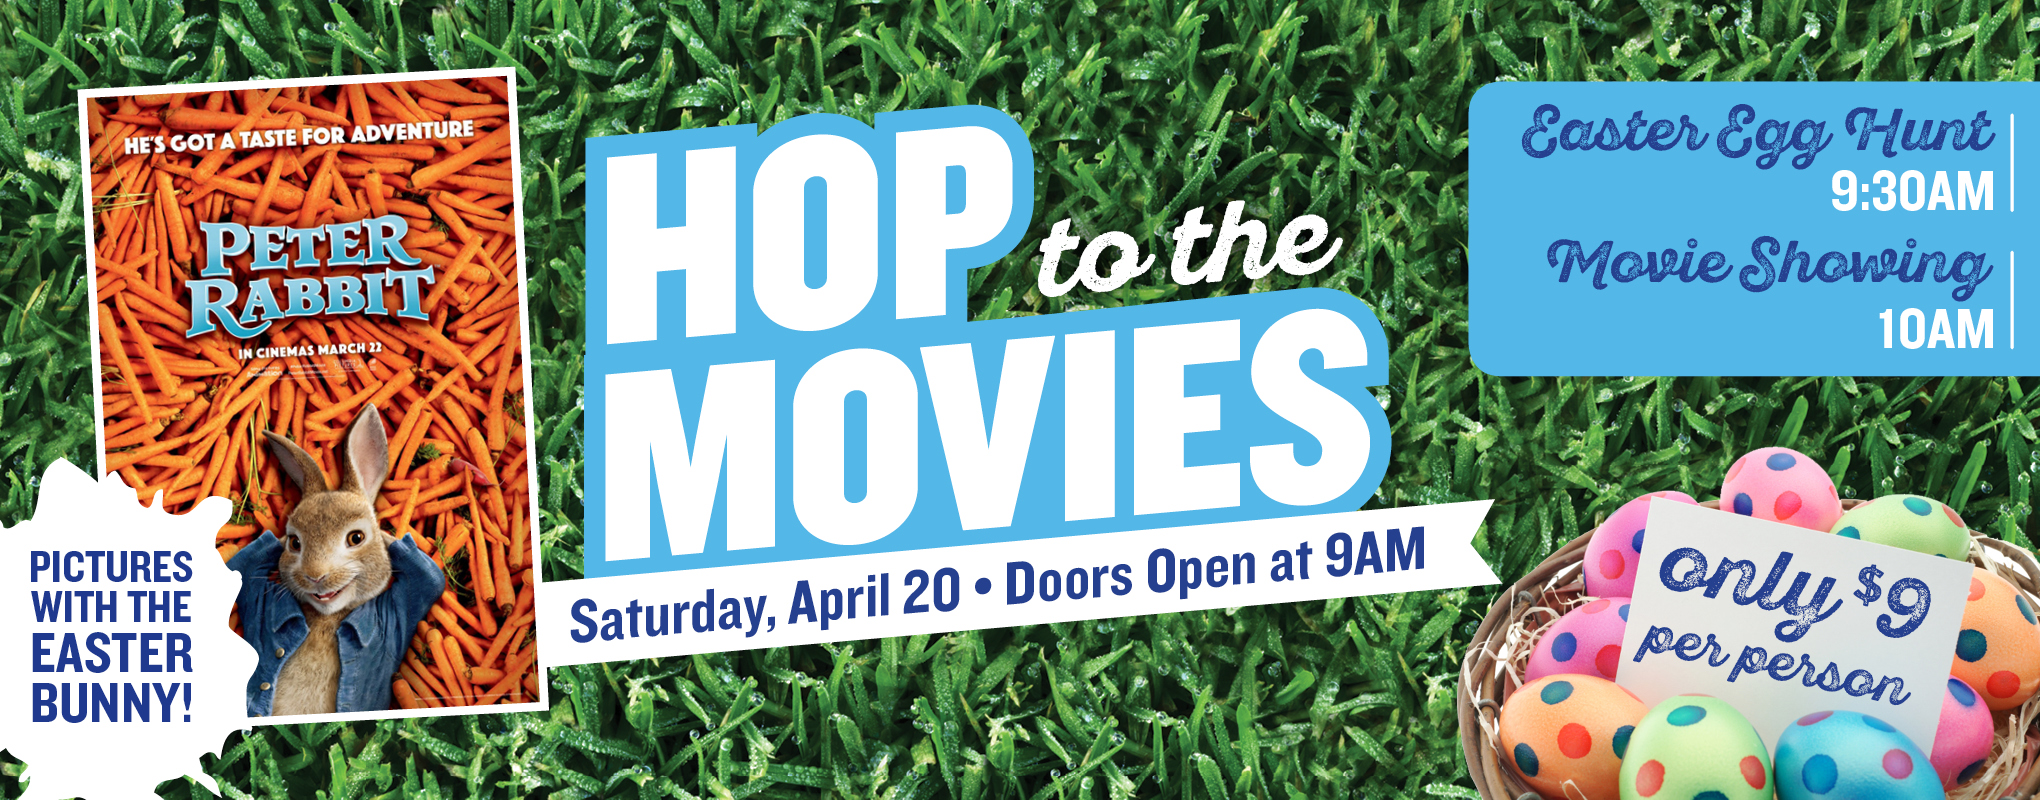 Hop to the Movies